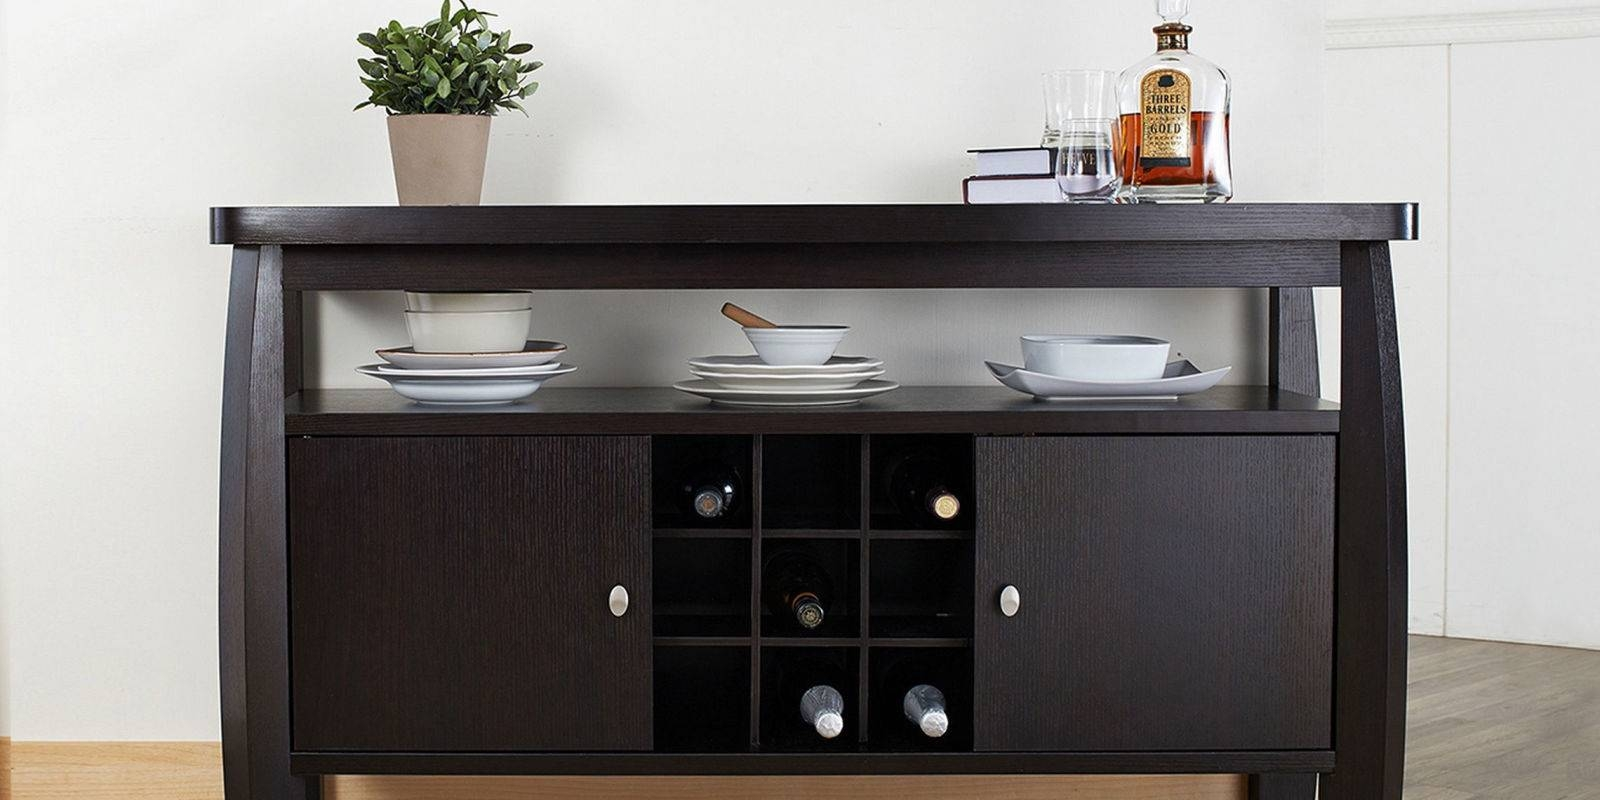 11 Best Sideboards And Buffets In 2018 – Reviews Of Sideboards Within Dining Buffets And Sideboards (Gallery 14 of 15)